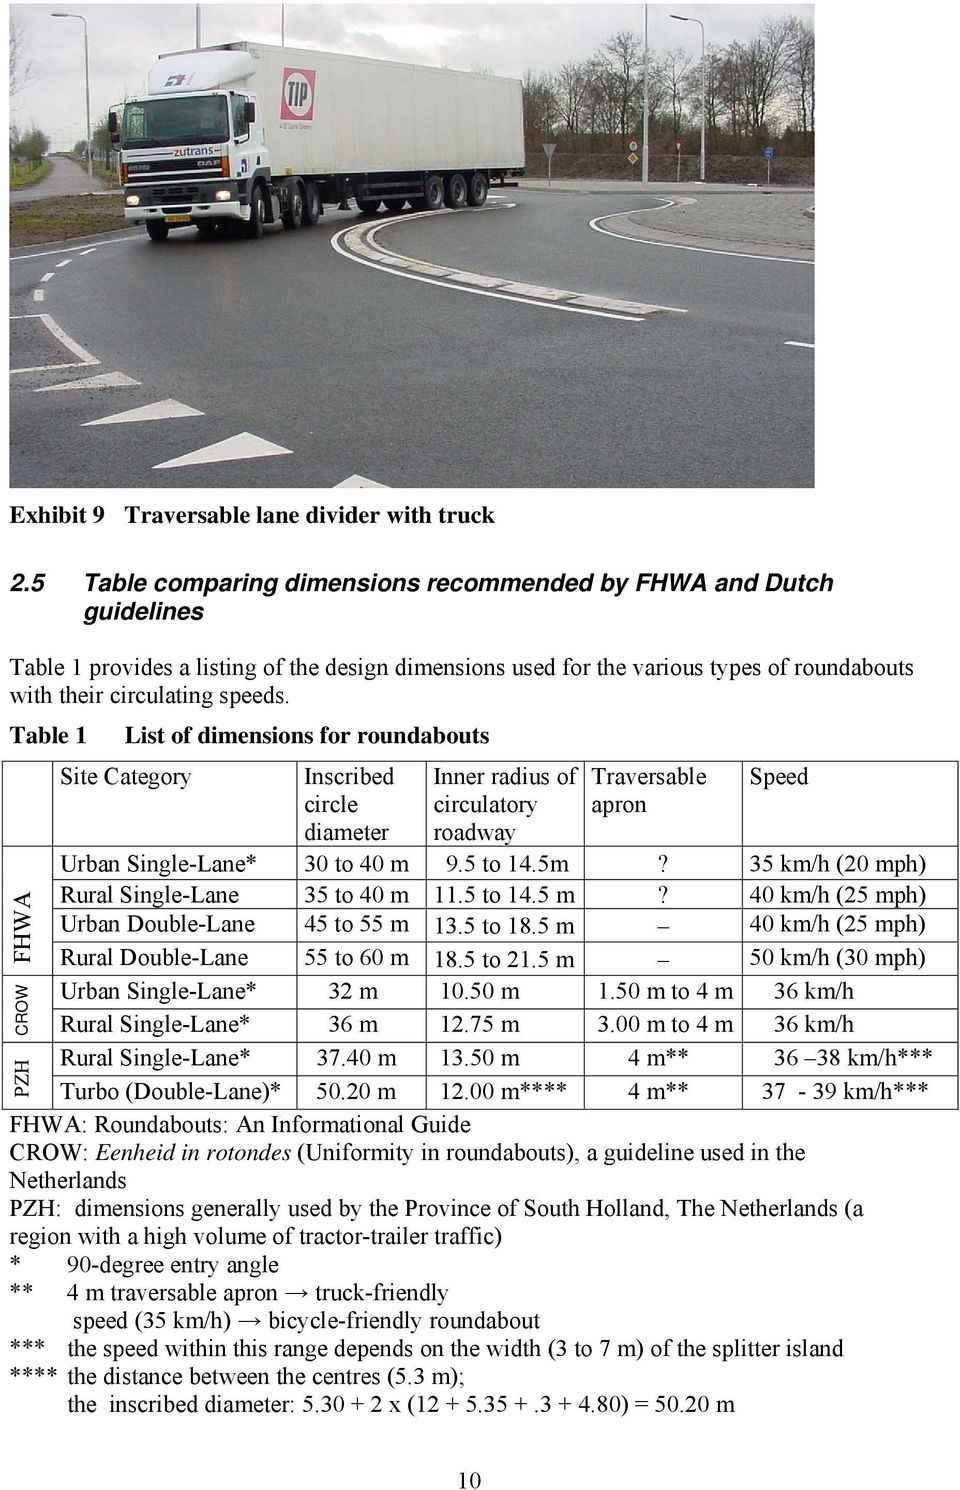 Table 1 List of dimensions for roundabouts Site Category Inscribed circle diameter Inner radius of circulatory roadway Traversable apron Speed Urban Single-Lane* 30 to 40 m 9.5 to 14.5m?